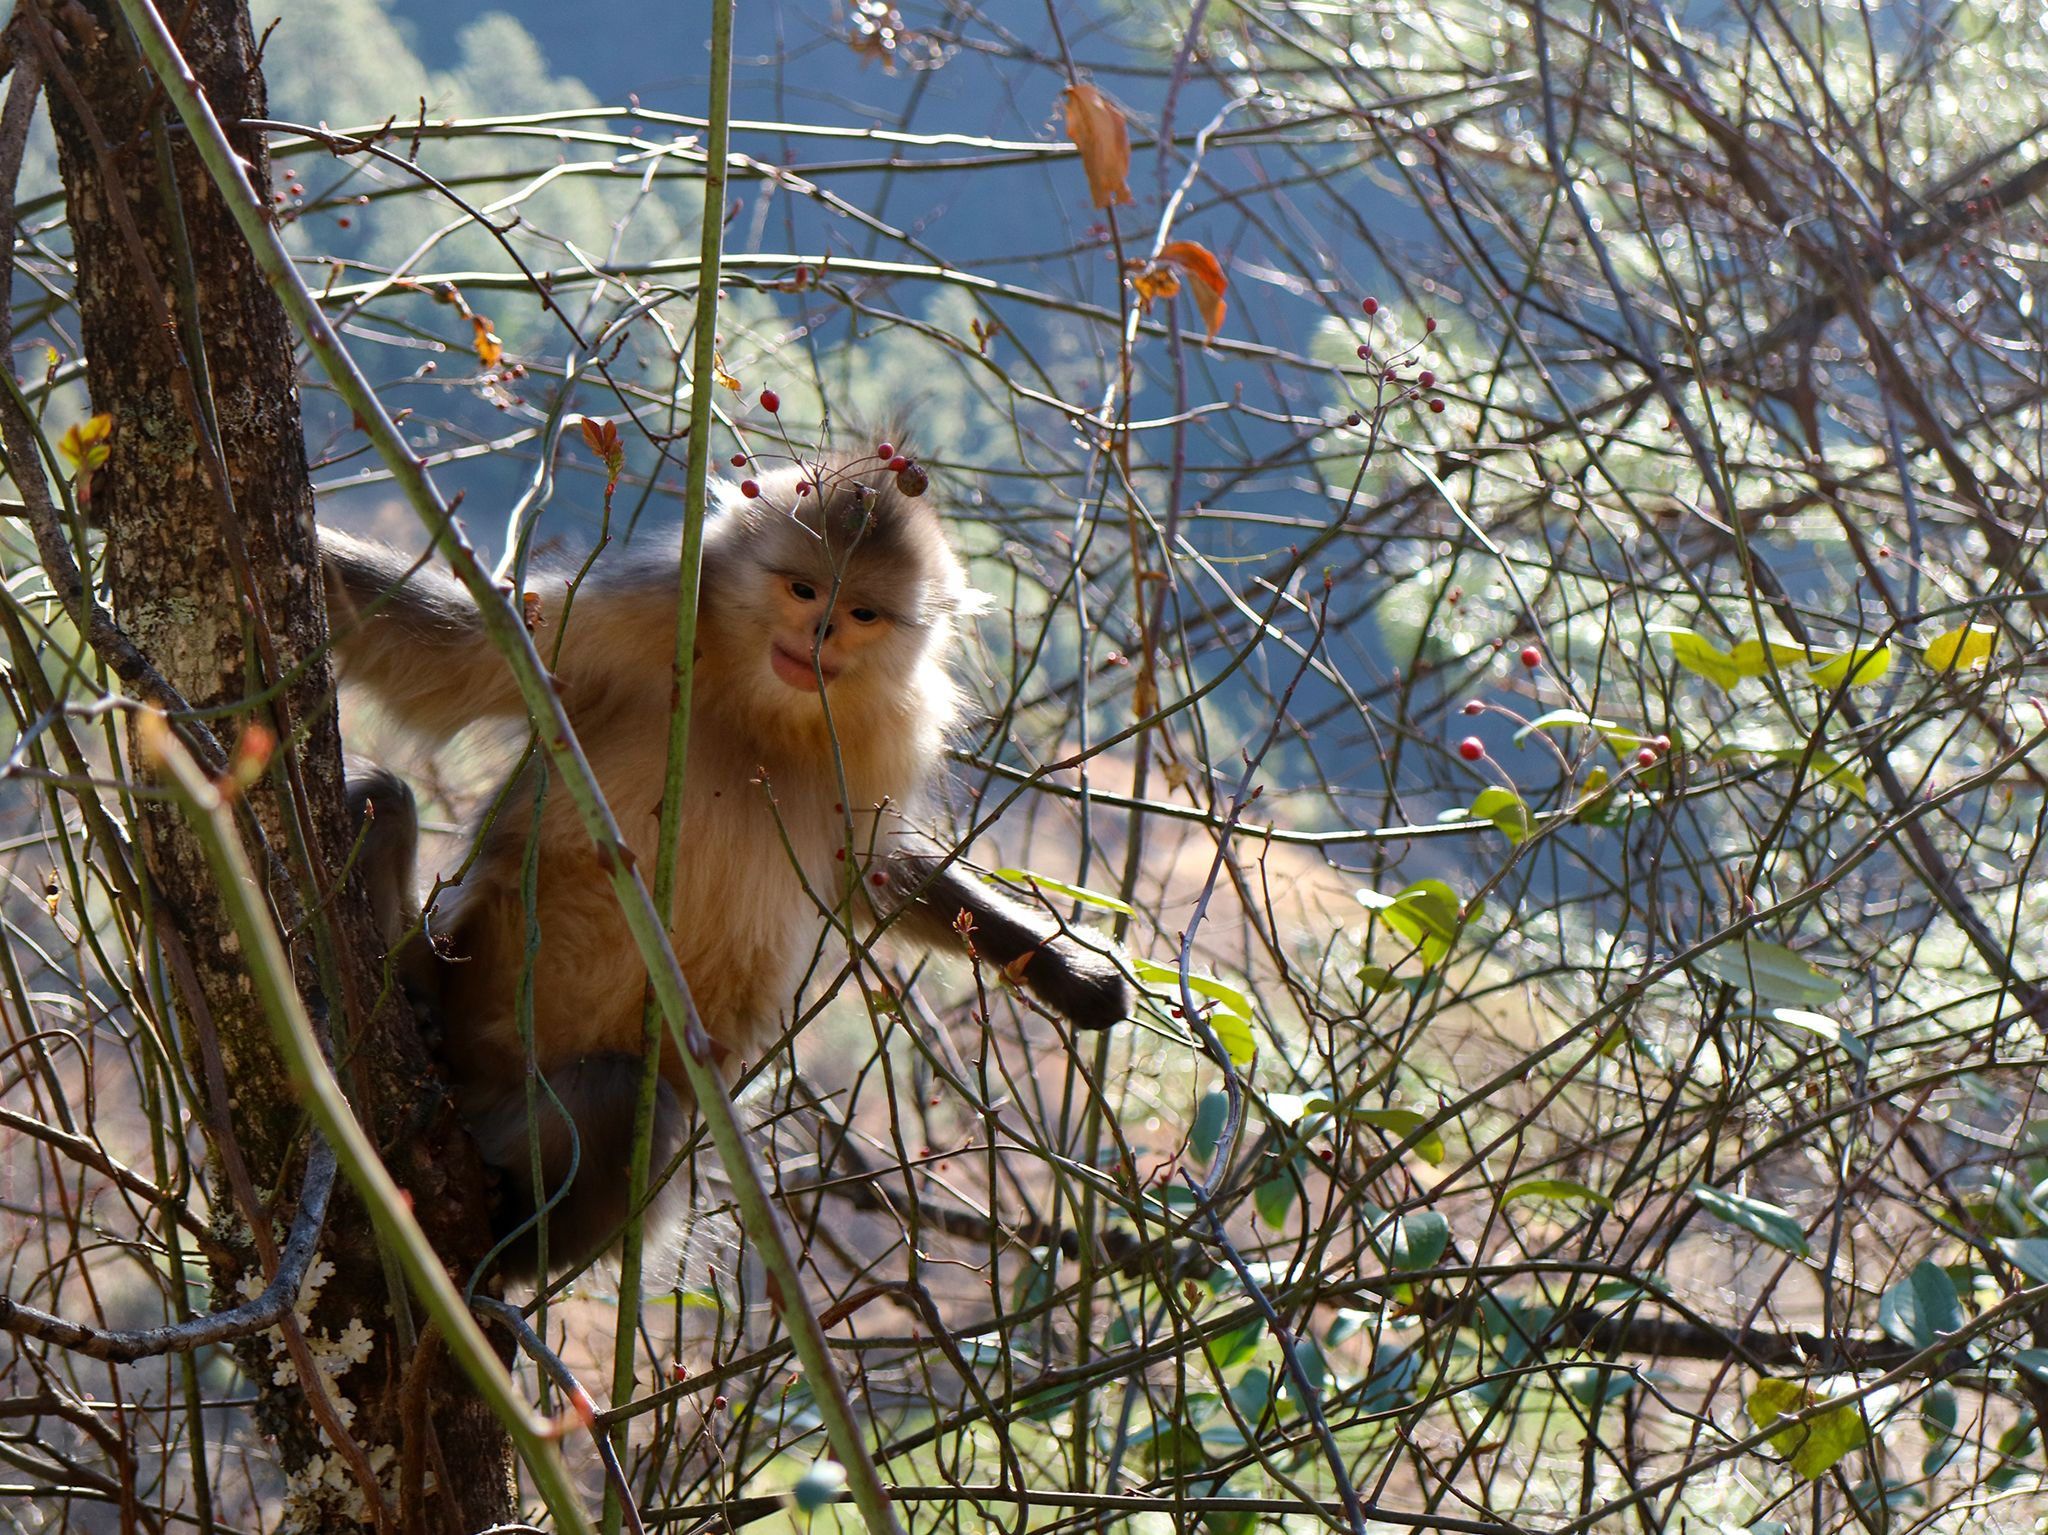 Baima Snow Mountain Nature Reserve, Yunnan:  Juvenile Yunnan snub nosed monkey in a tree.... [Photo of the day - June 2020]